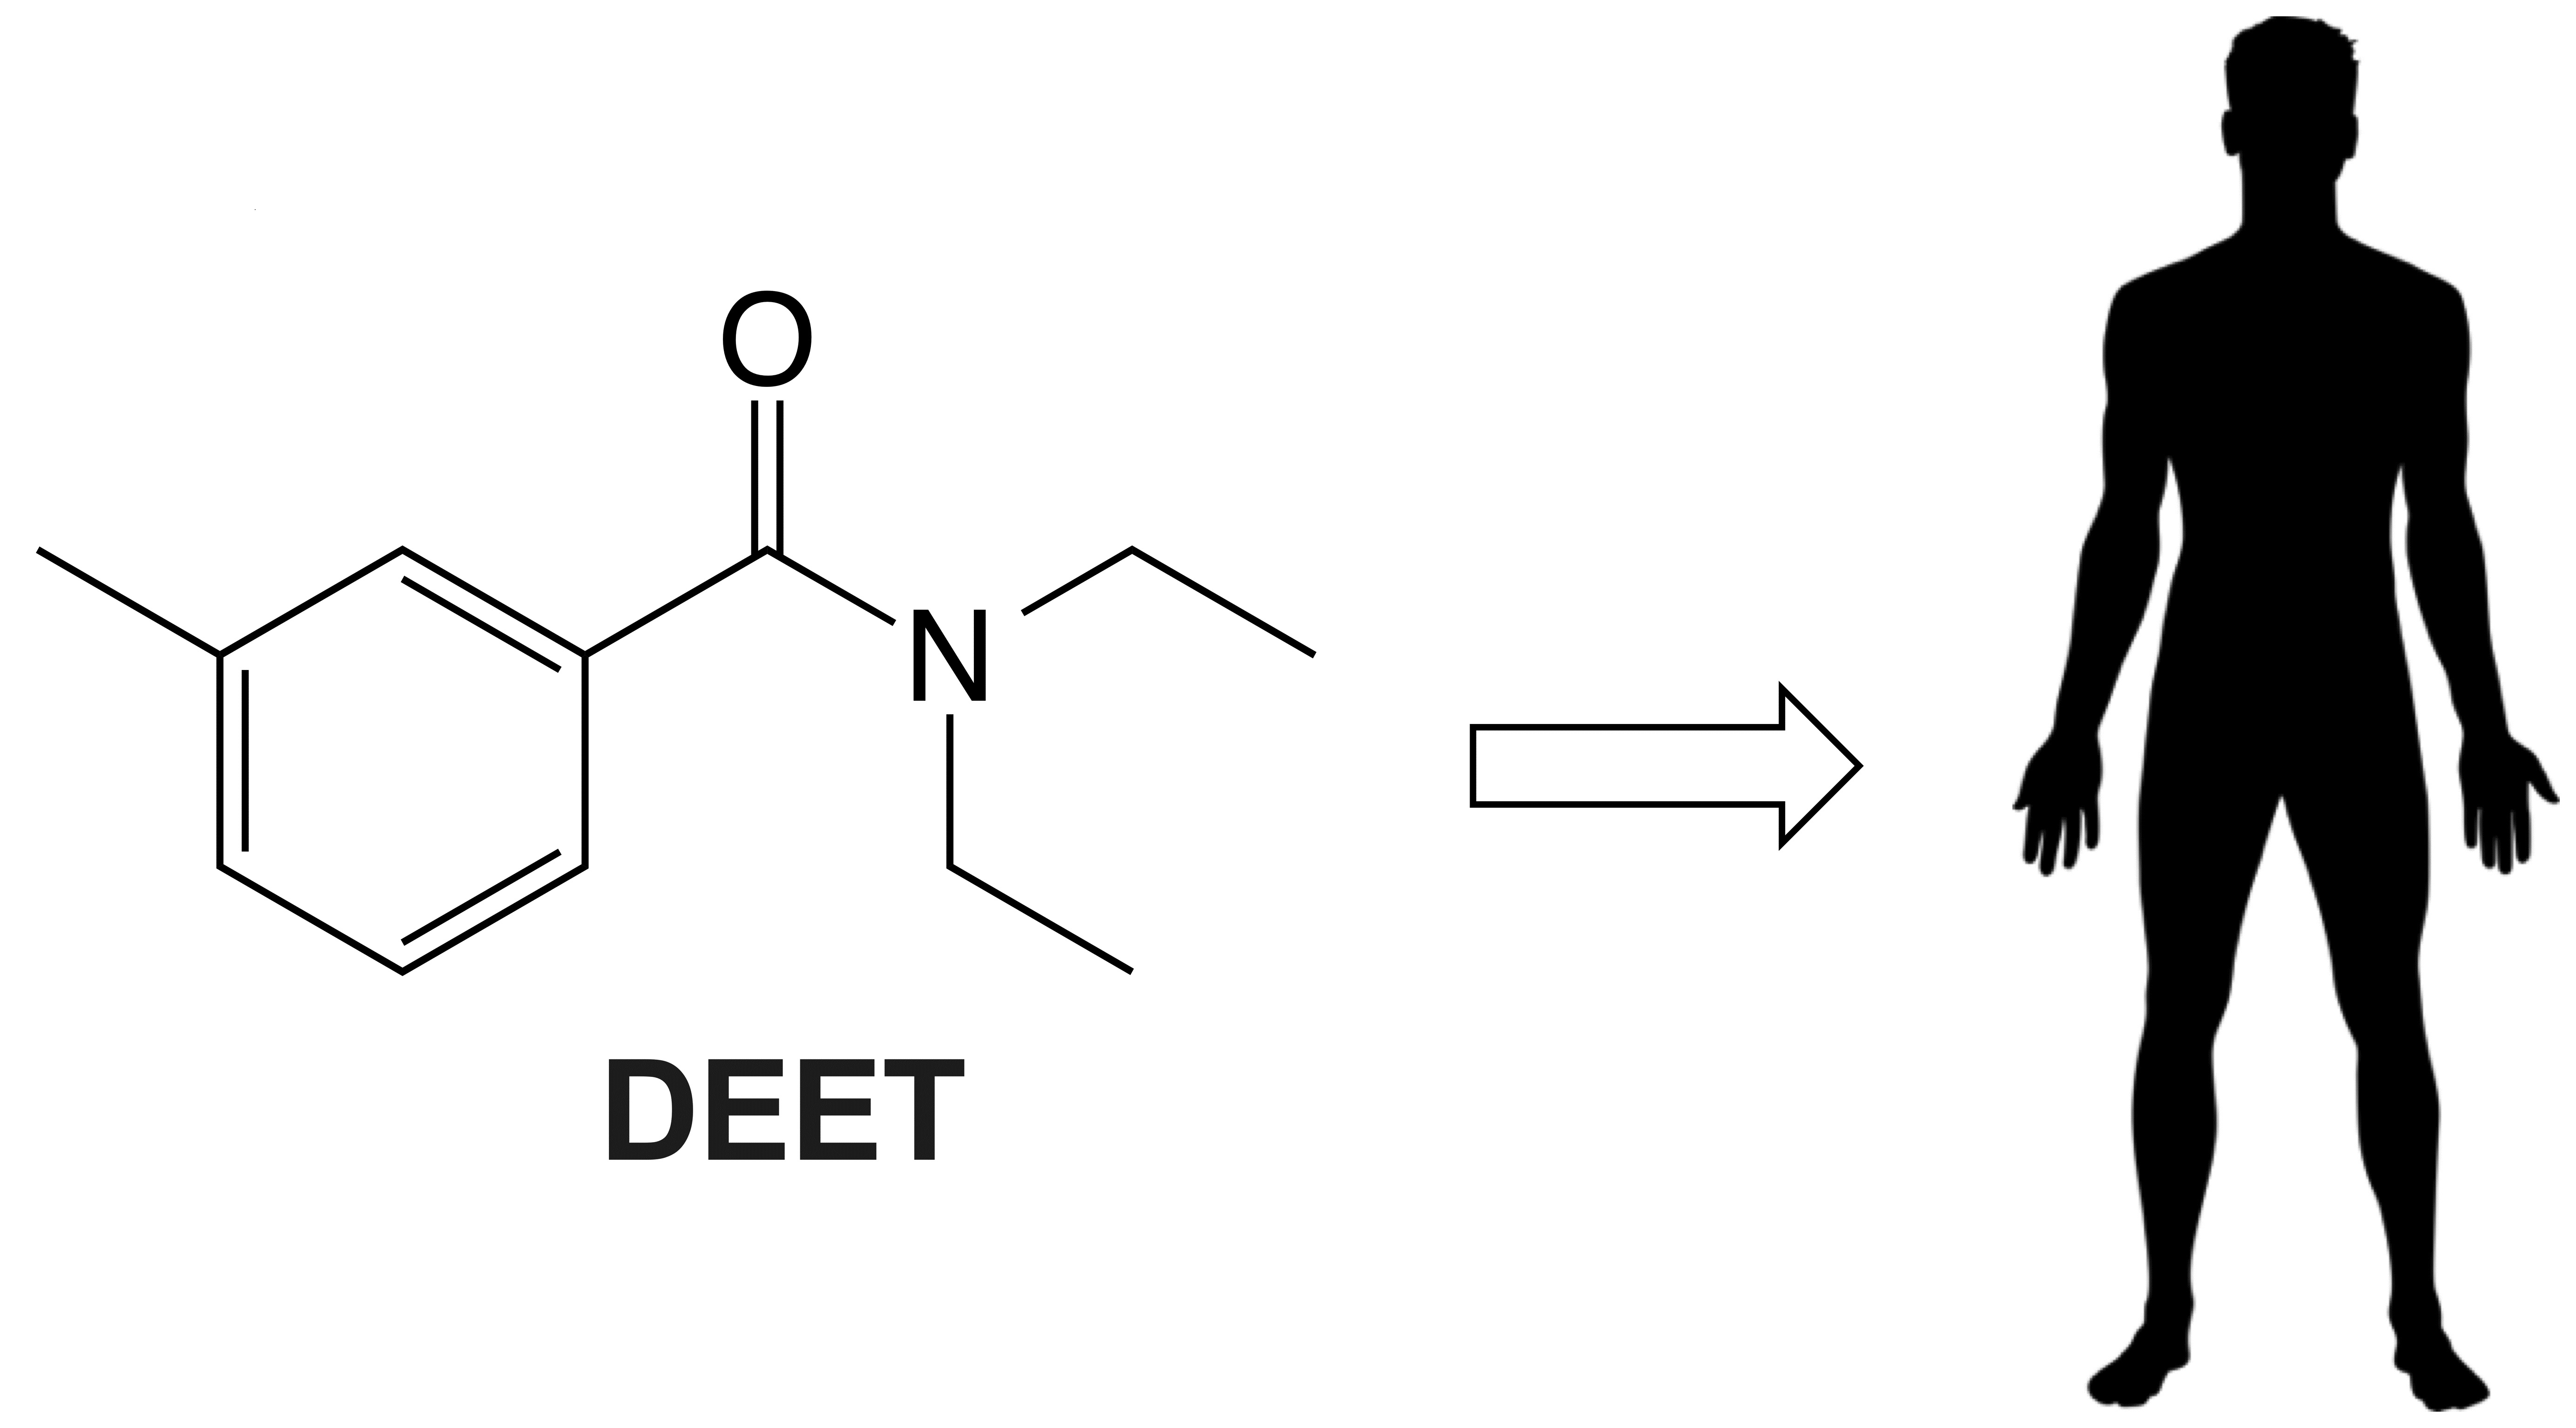 DEET chemical structure next to outline of person